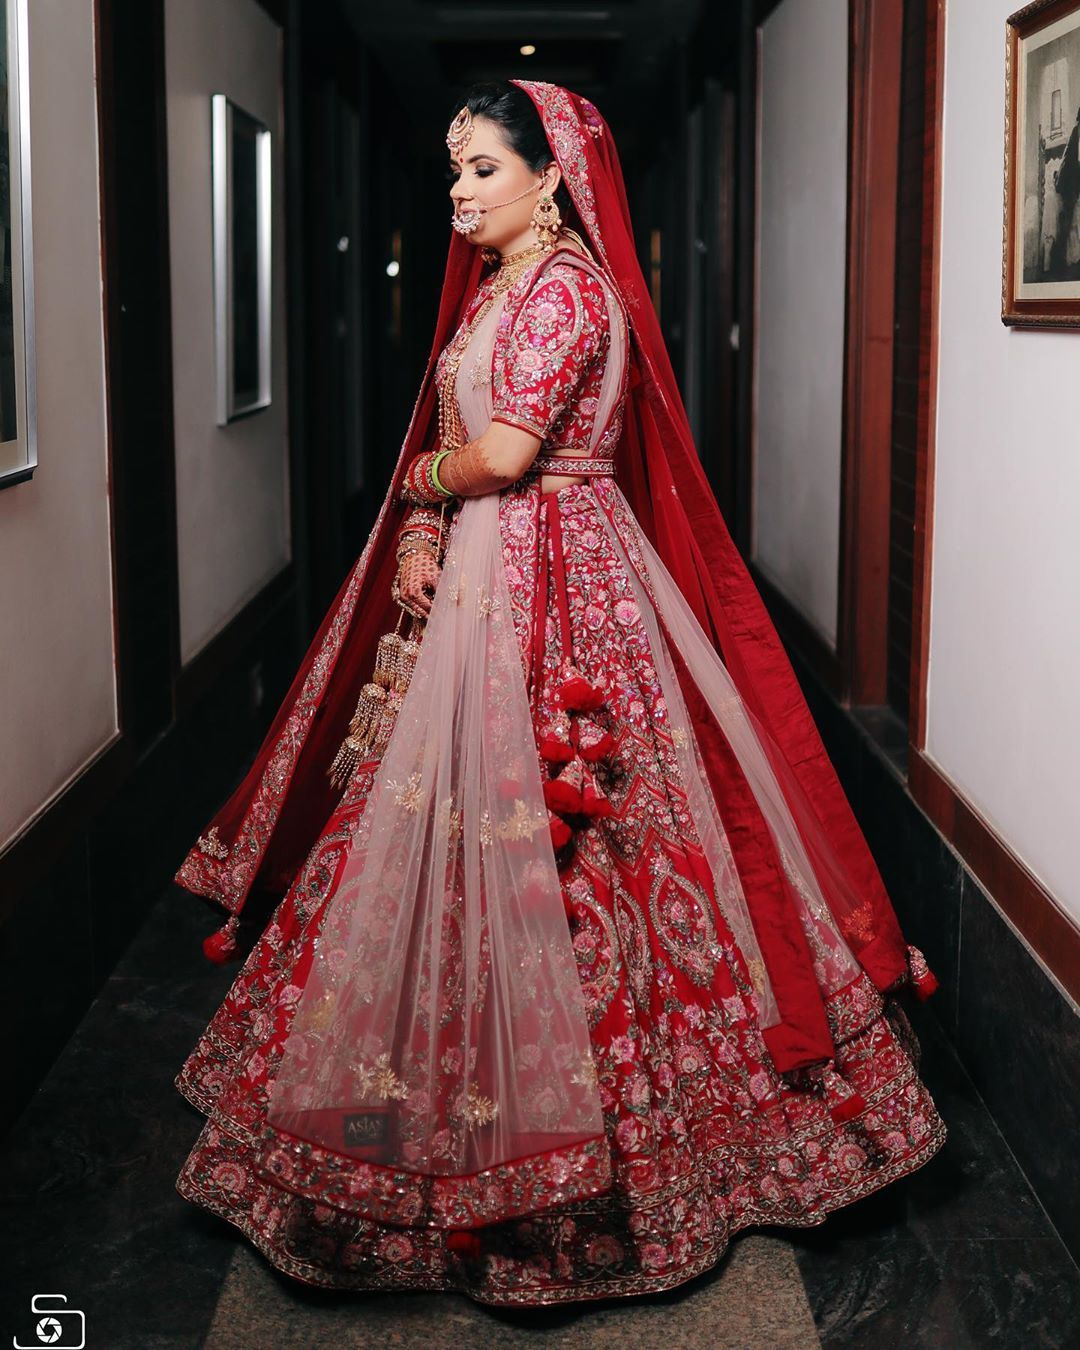 Red Floral Wedding Lehenga With Double Dupatta Wedding Lehenga Designs Red Bridal Dress Indian Bride Outfits